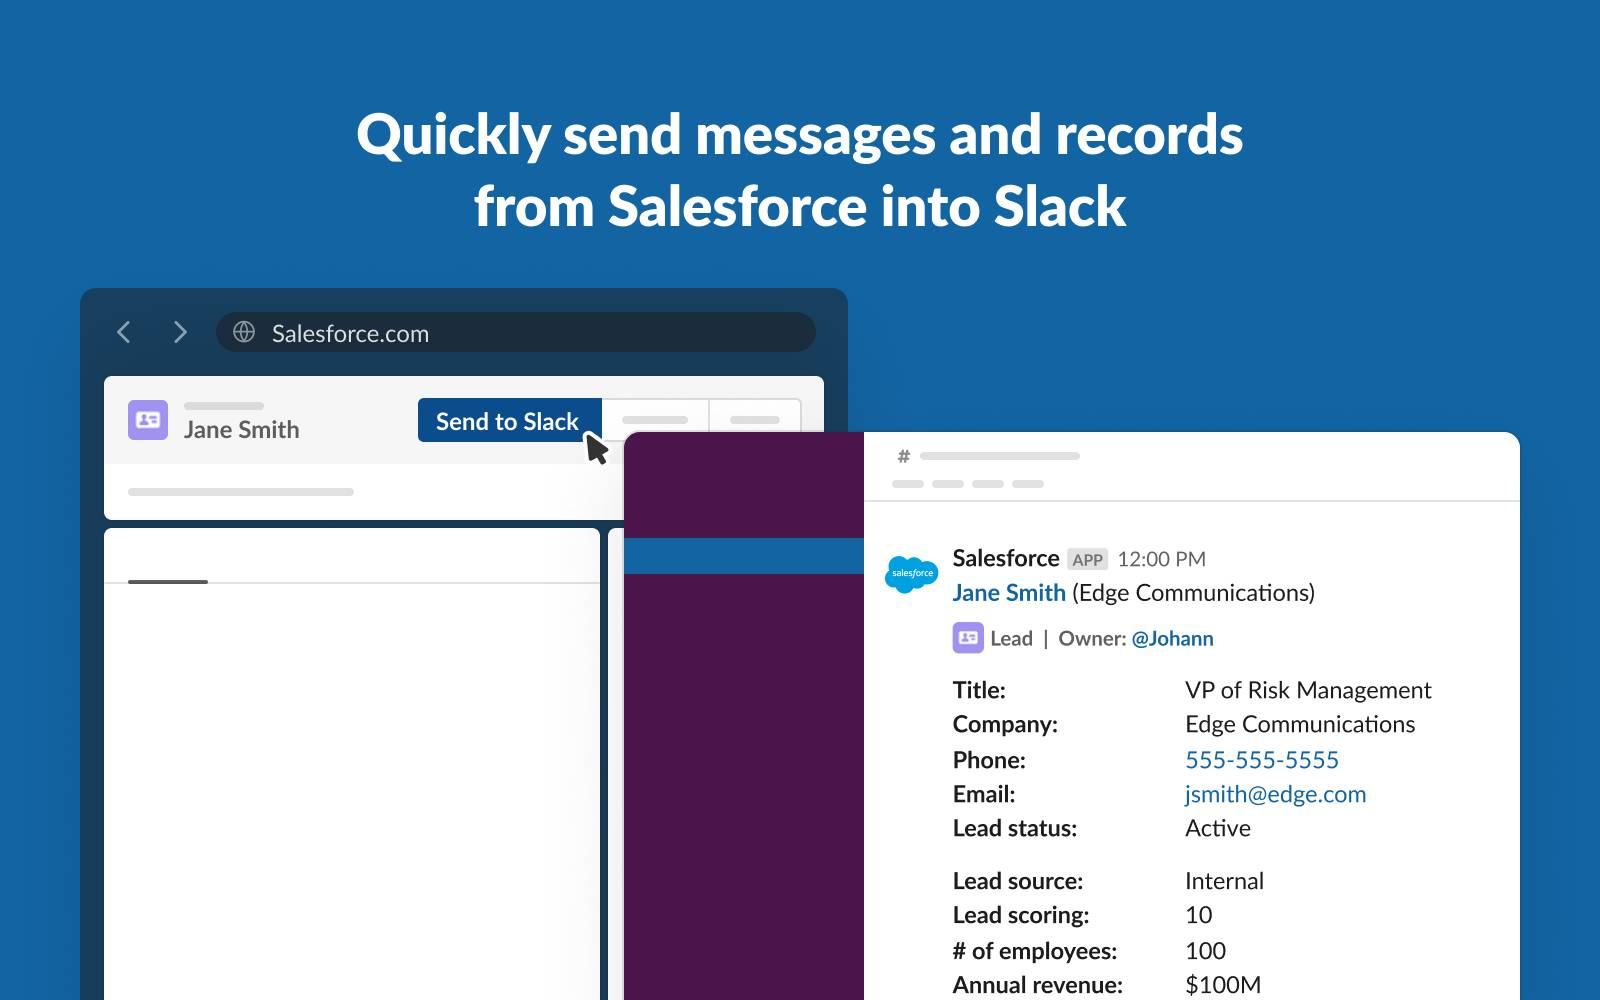 Image of a Salesforce lead record for Jane Smith with the Send to Slack button highlighted